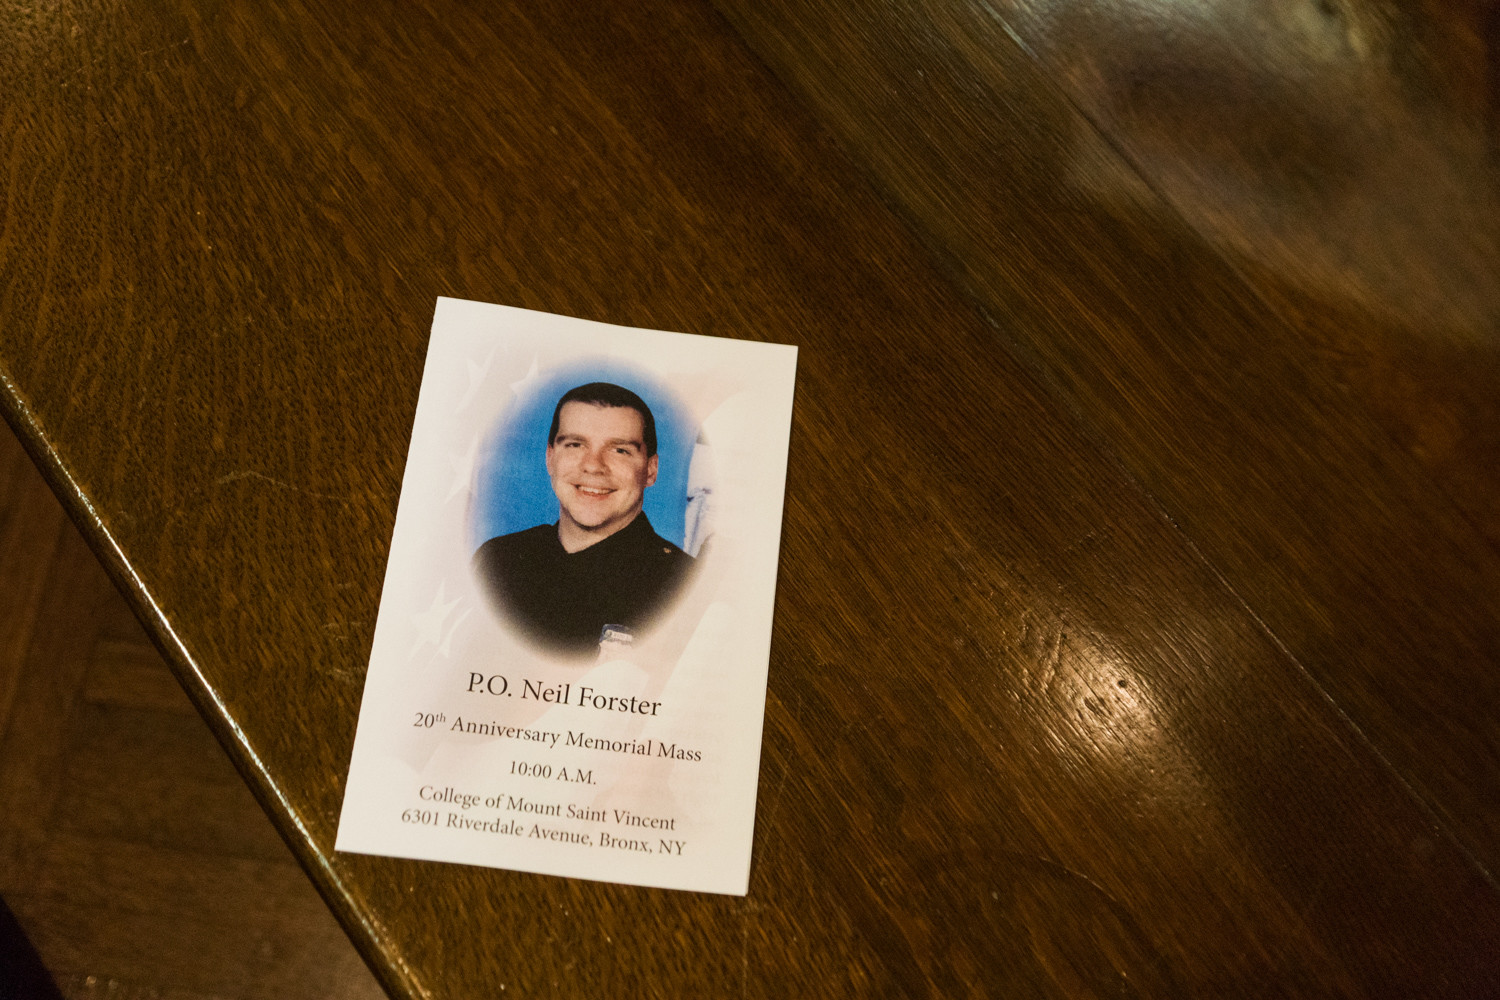 A program for the 20th anniversary memorial Mass for Neil Forster rests on a pew in the Chapel of the Immaculate Conception at the College of Mount Saint Vincent. Forster died of cancer in 1997, a year after sustaining injuries when an alleged drunken-driving off-duty cop hit him.